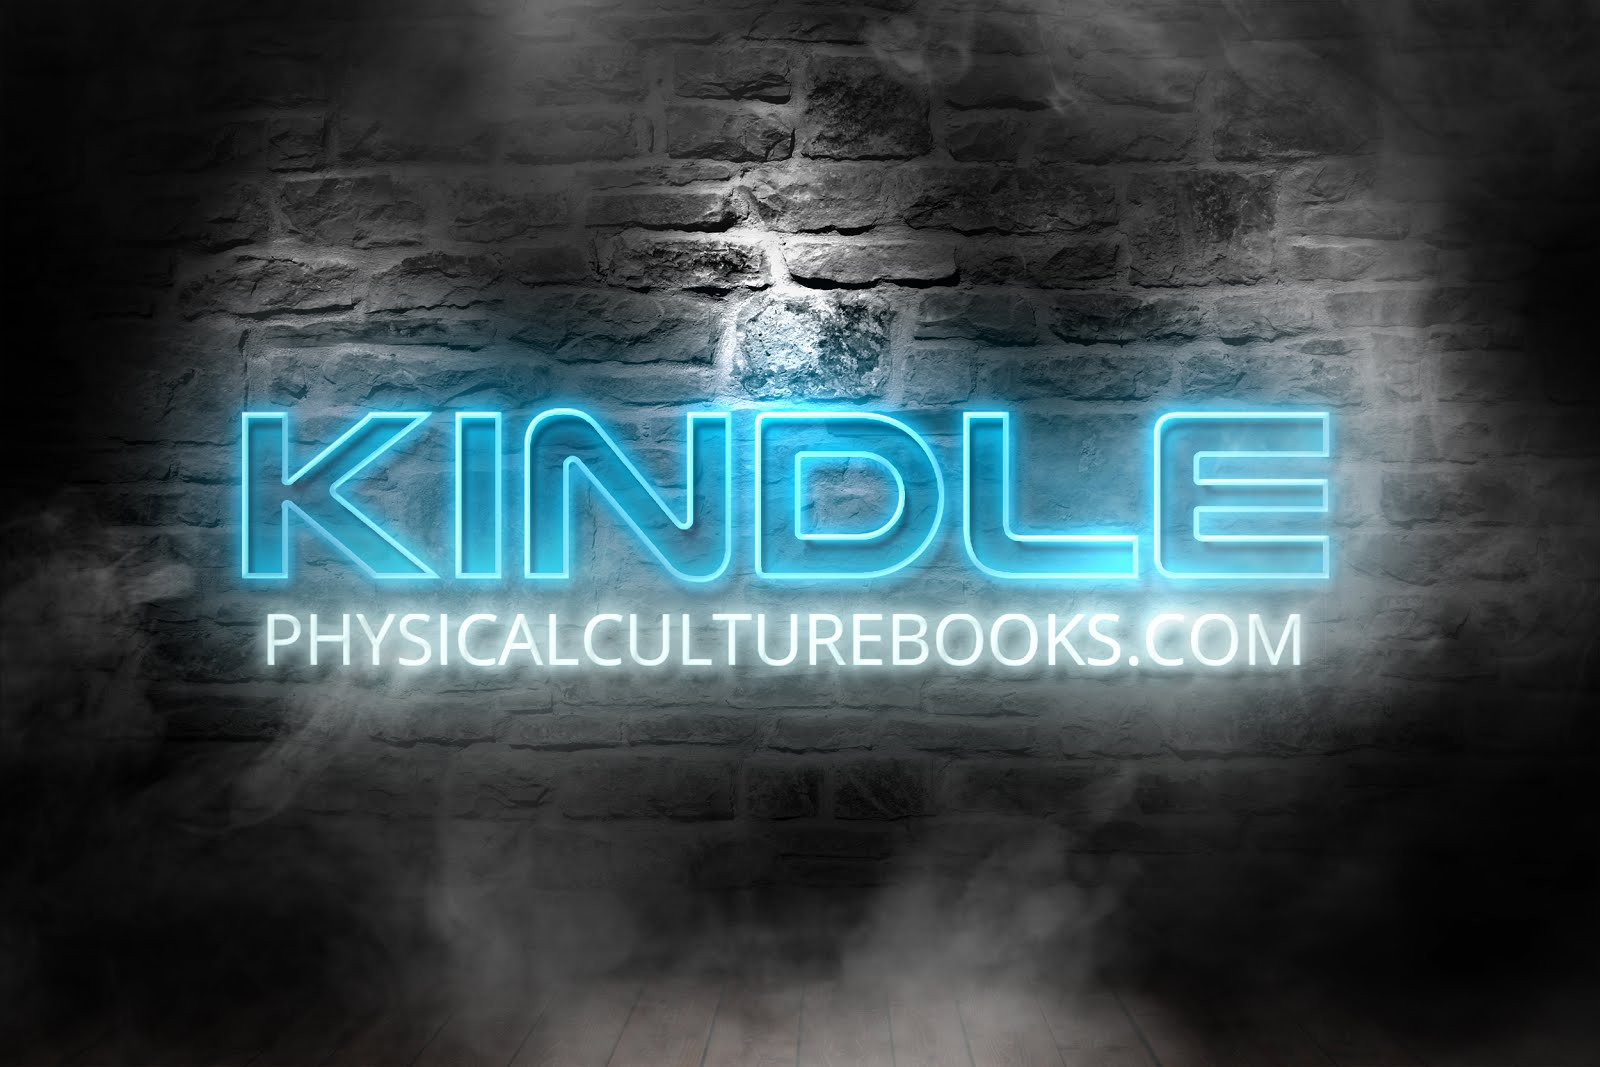 See our KINDLE store!